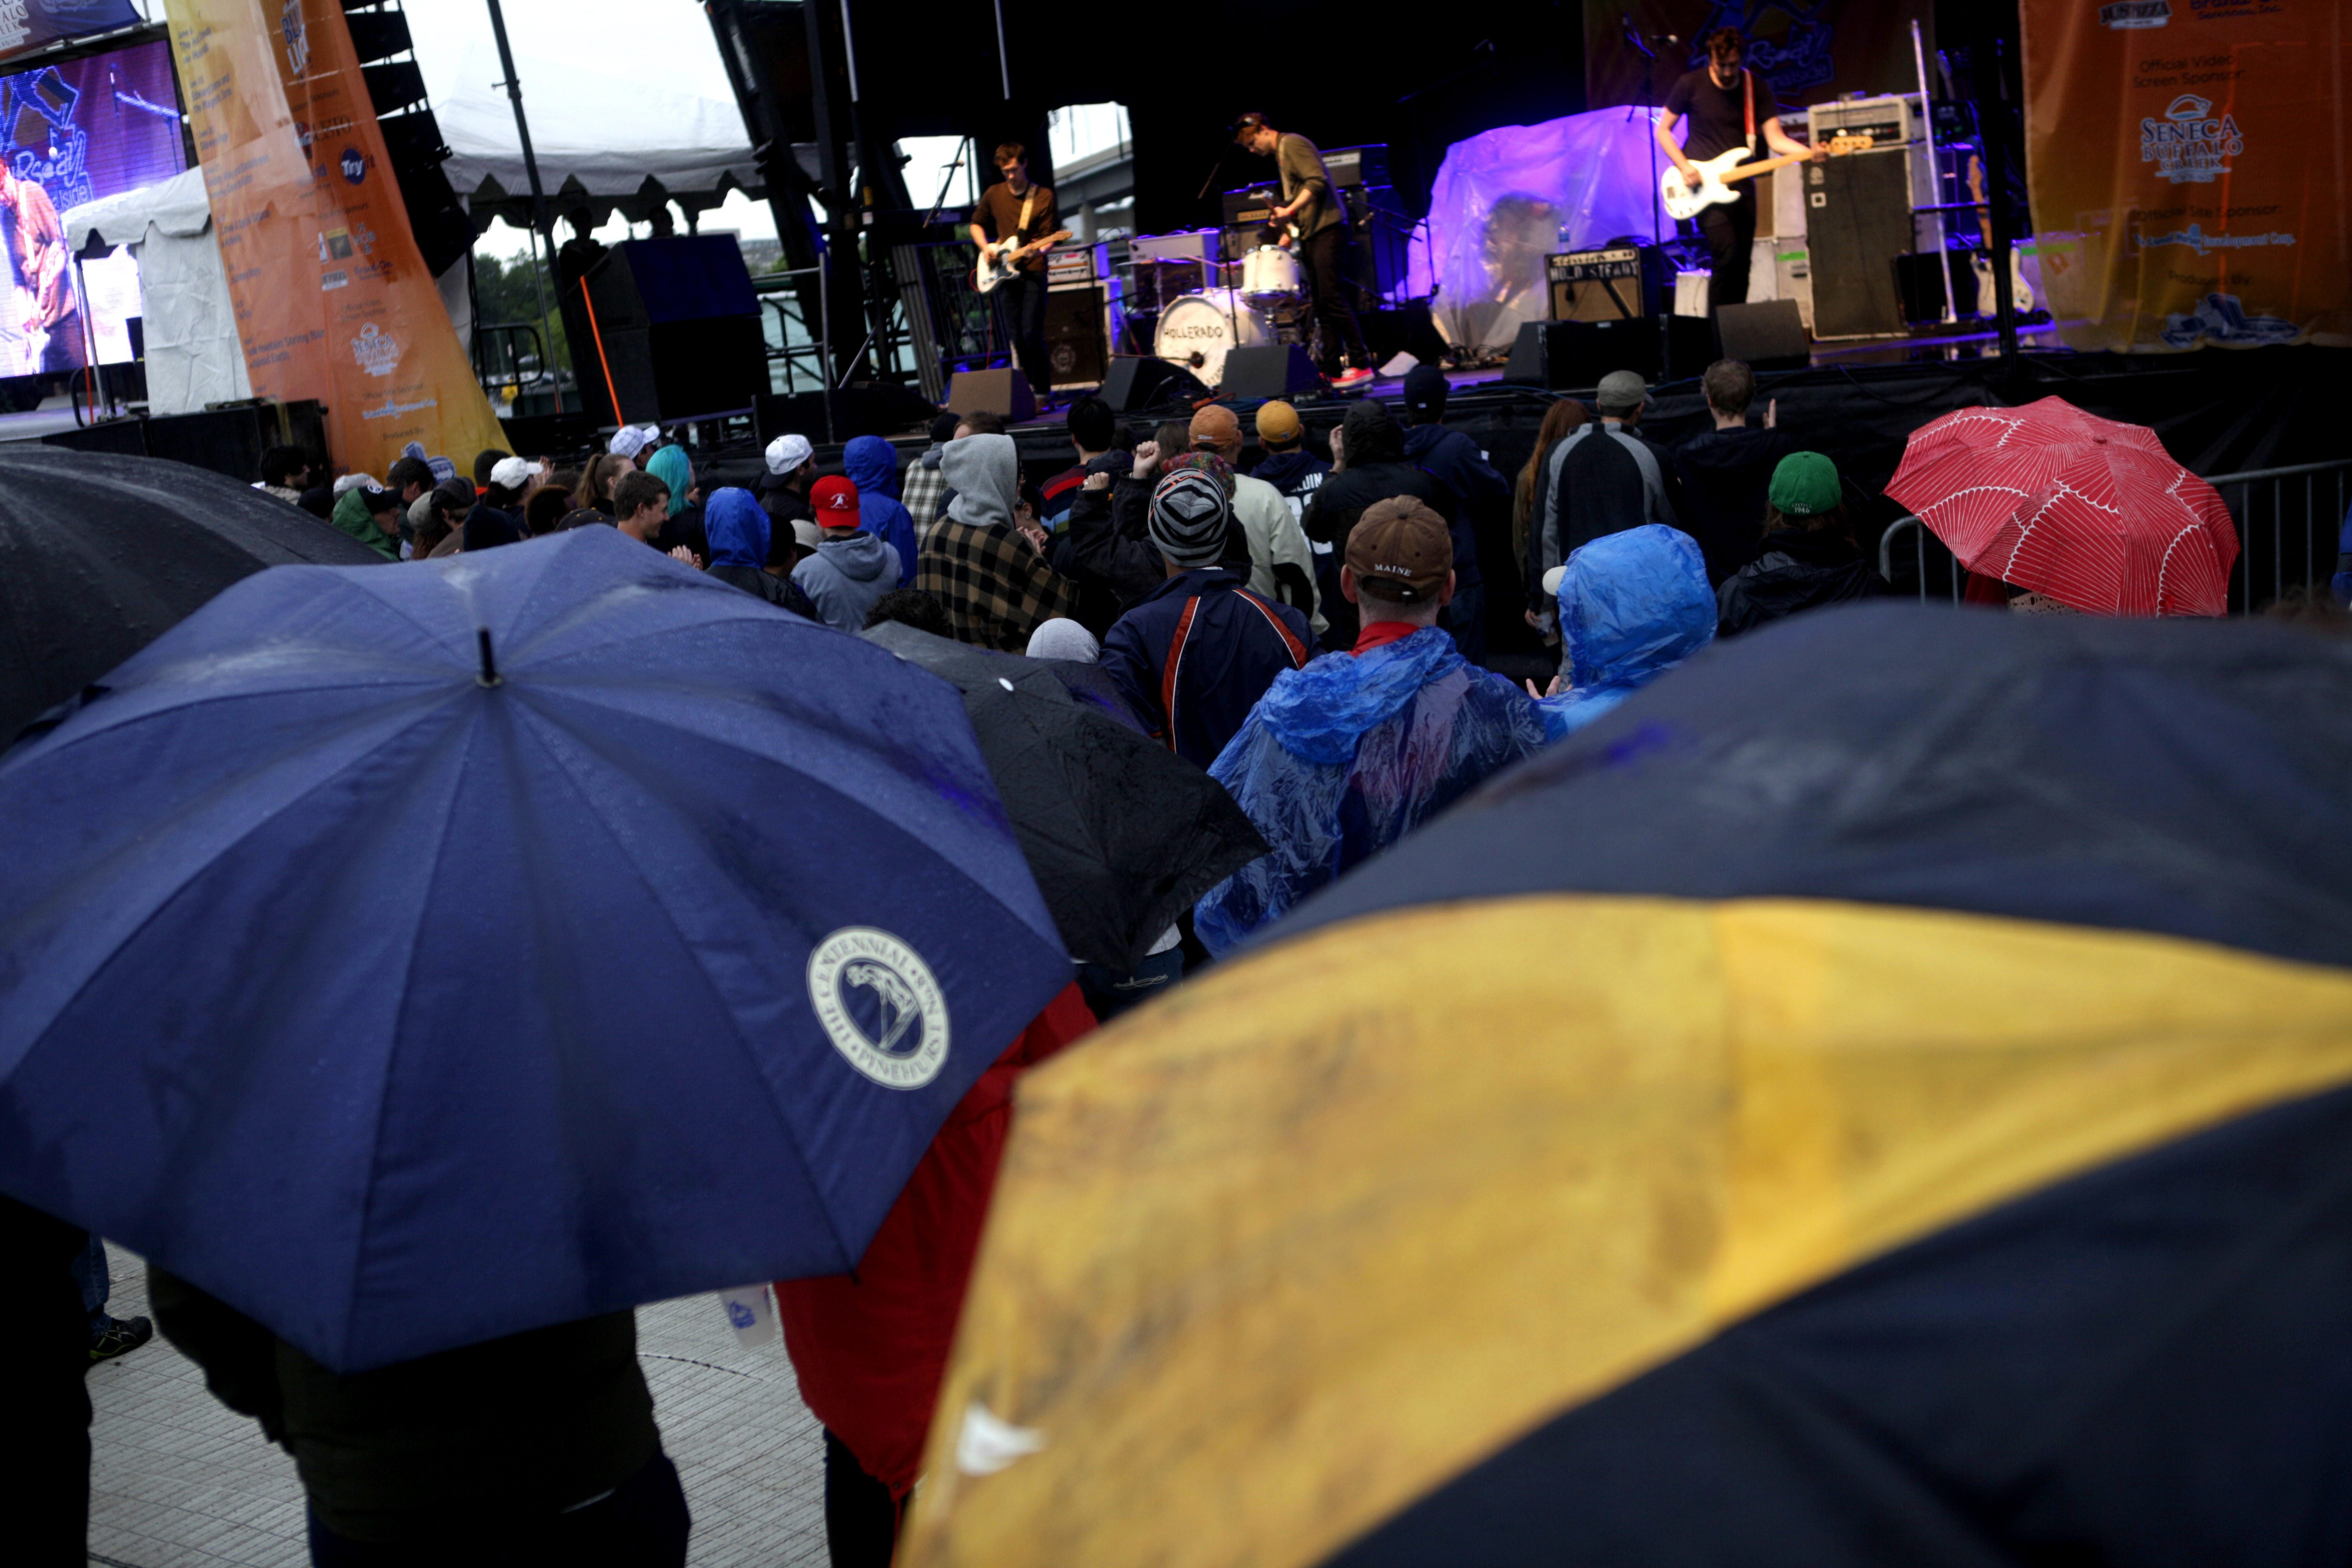 Rain showers deterred some concertgoers although the crowd size grew as the night when on. Hollerado performs during opening night of the Thursday at Canalside series on Thursday, June 6, 2013.  (Matthew Masin/Buffalo News)